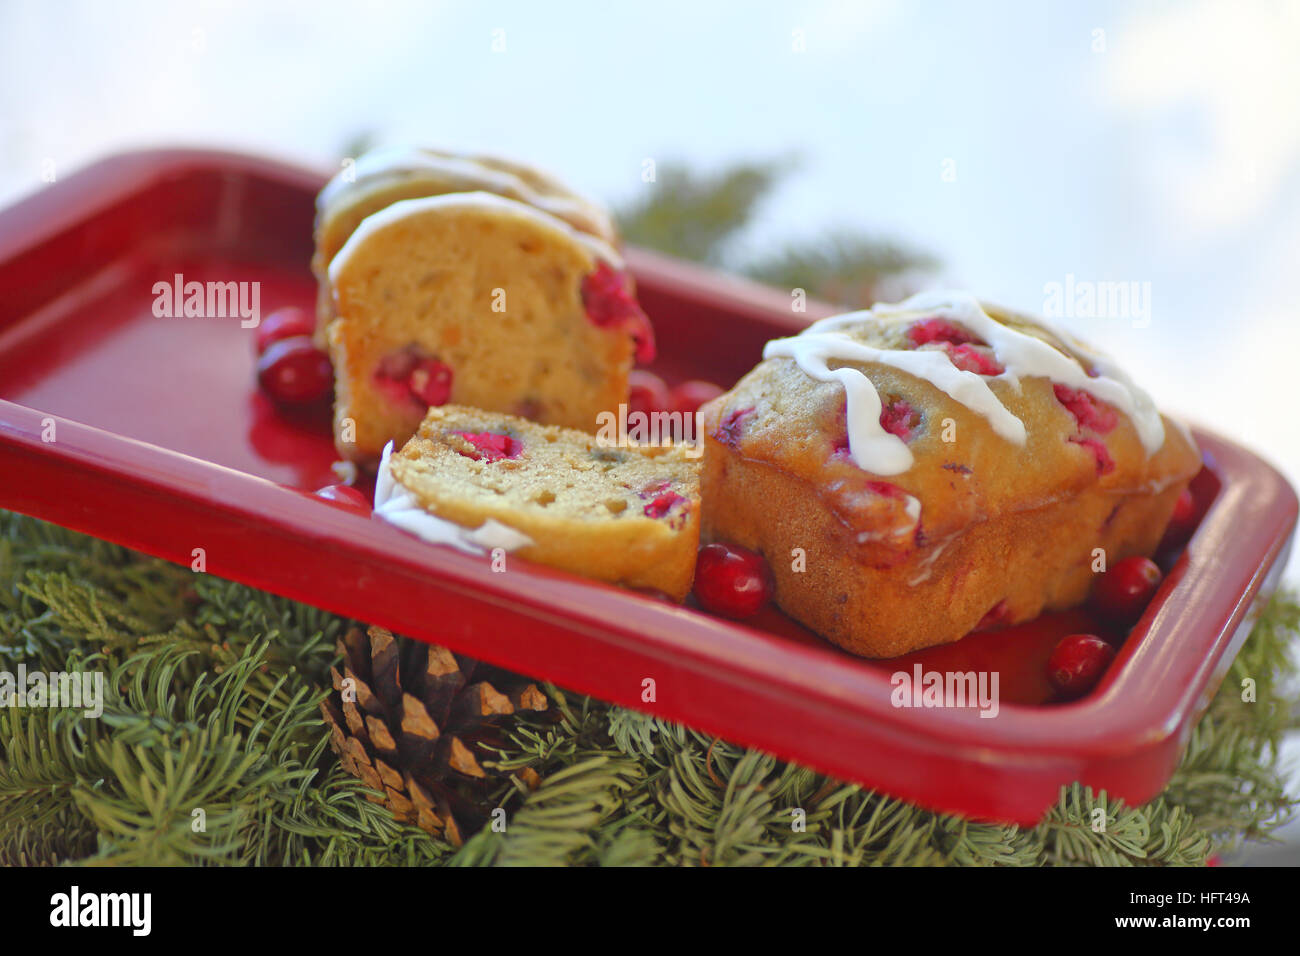 Small loaf cakes with fresh cranberries on a red tray over evergreens and a pine cone - Stock Image